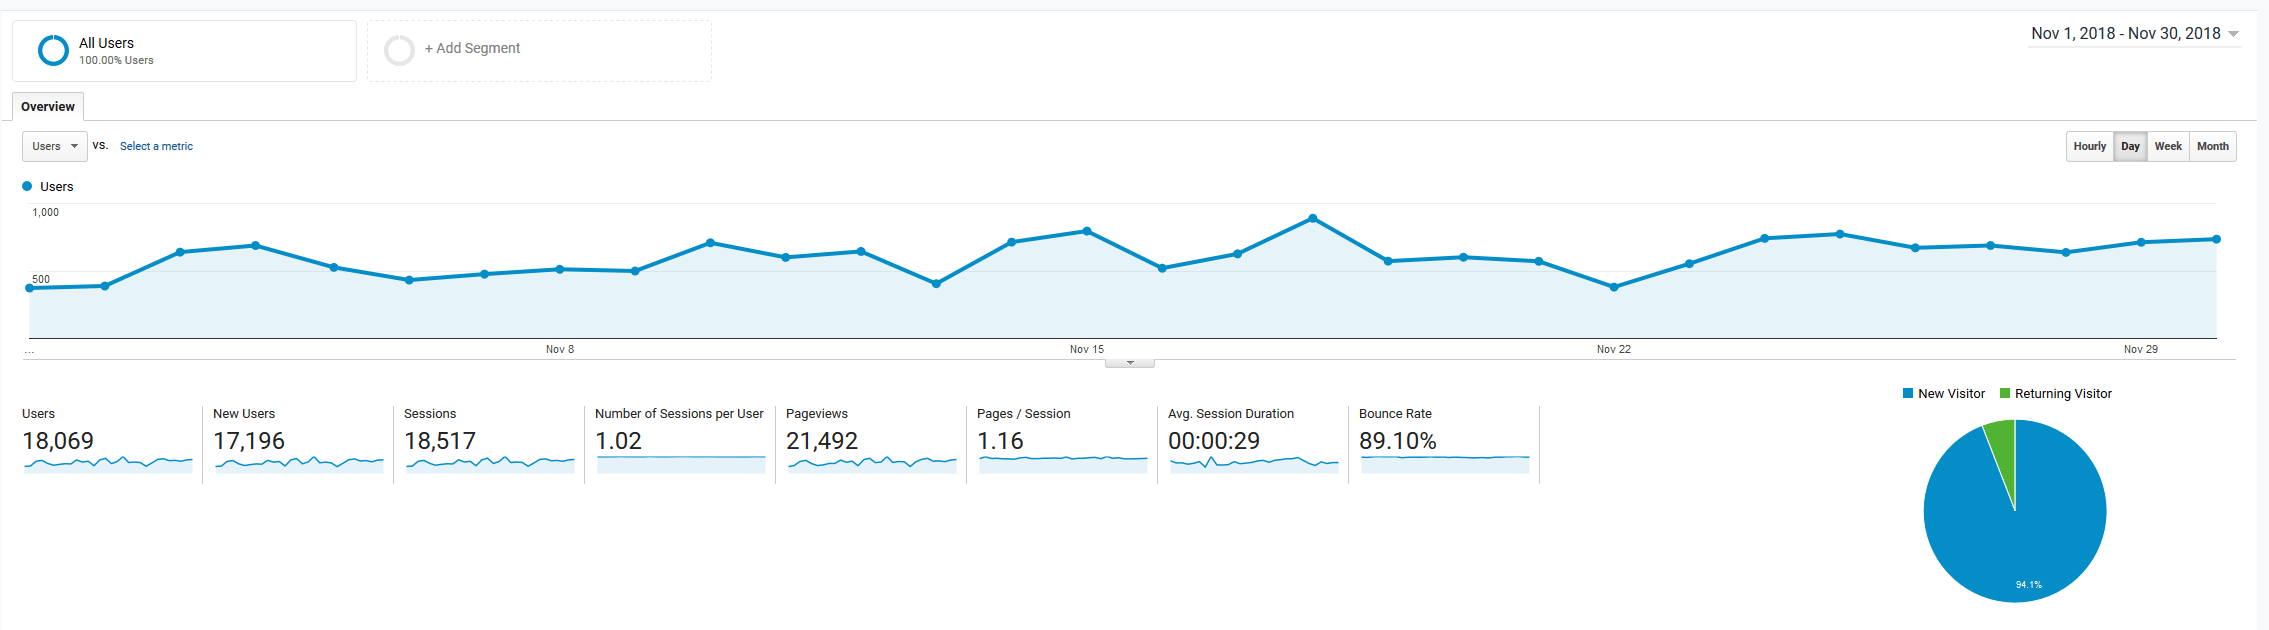 roseclearfield.com November 2018 Google Analytics | https://www.roseclearfield.com